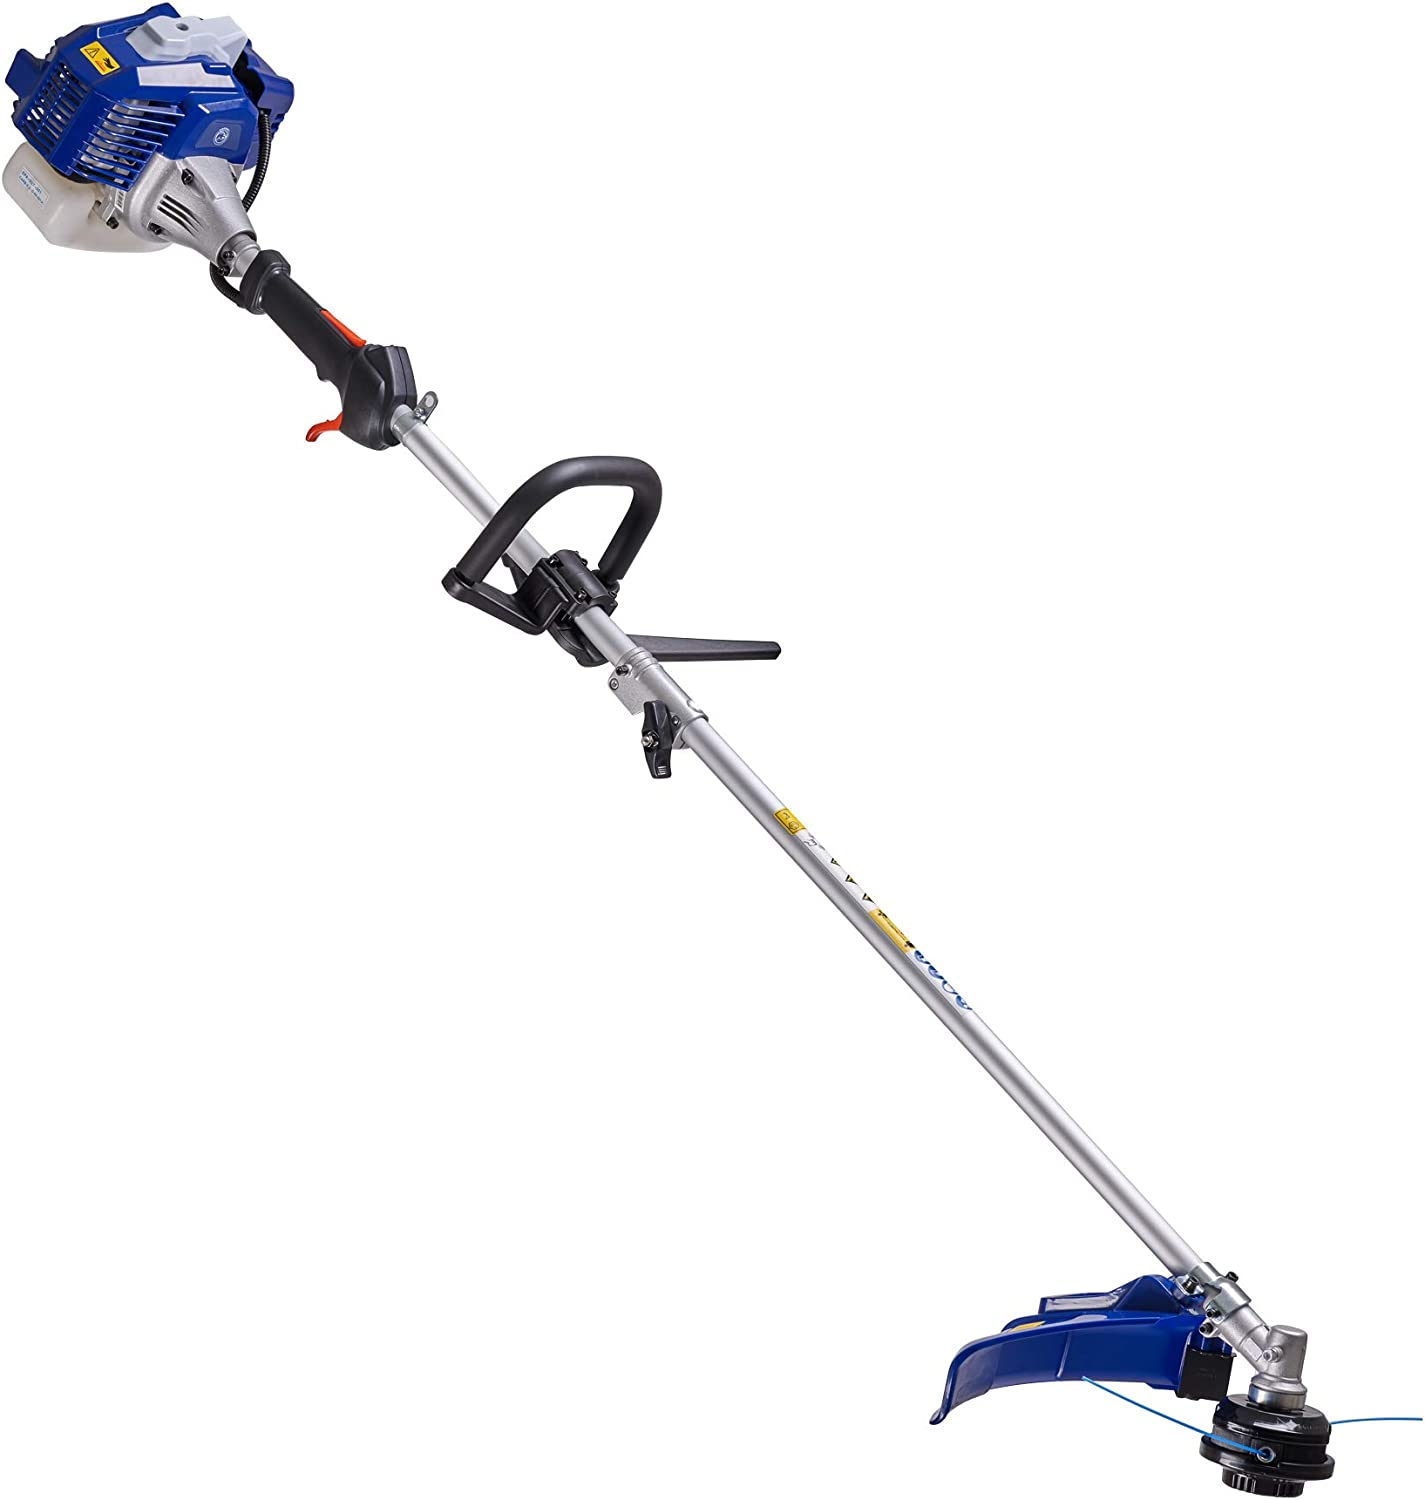 Wild Badger Power WBP26BCI 26CC Straight Shaft Brush Cutter, Blue